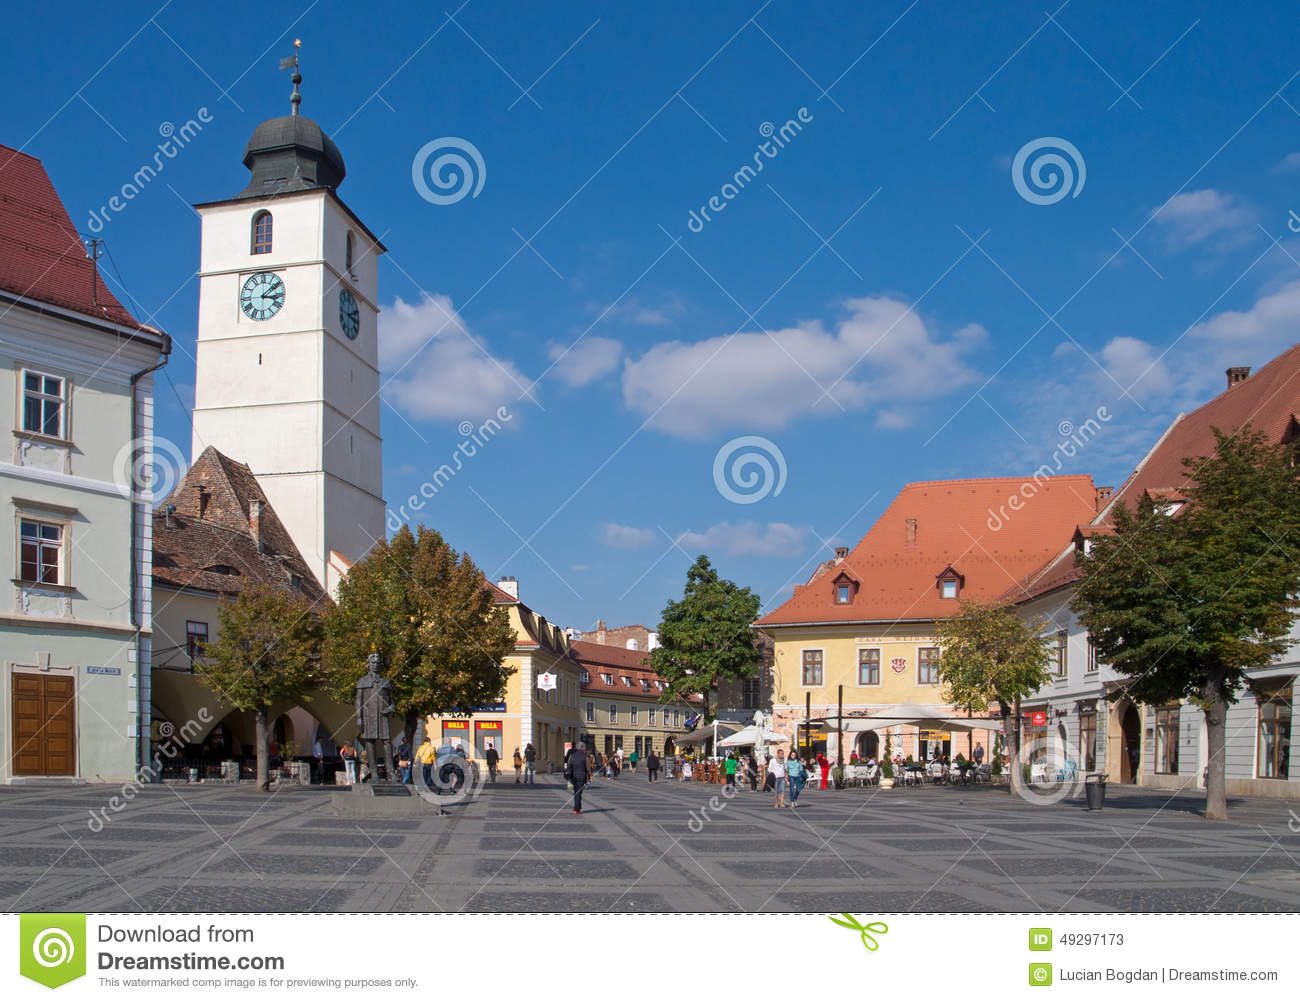 The Council Tower in the Large Square of Sibiu